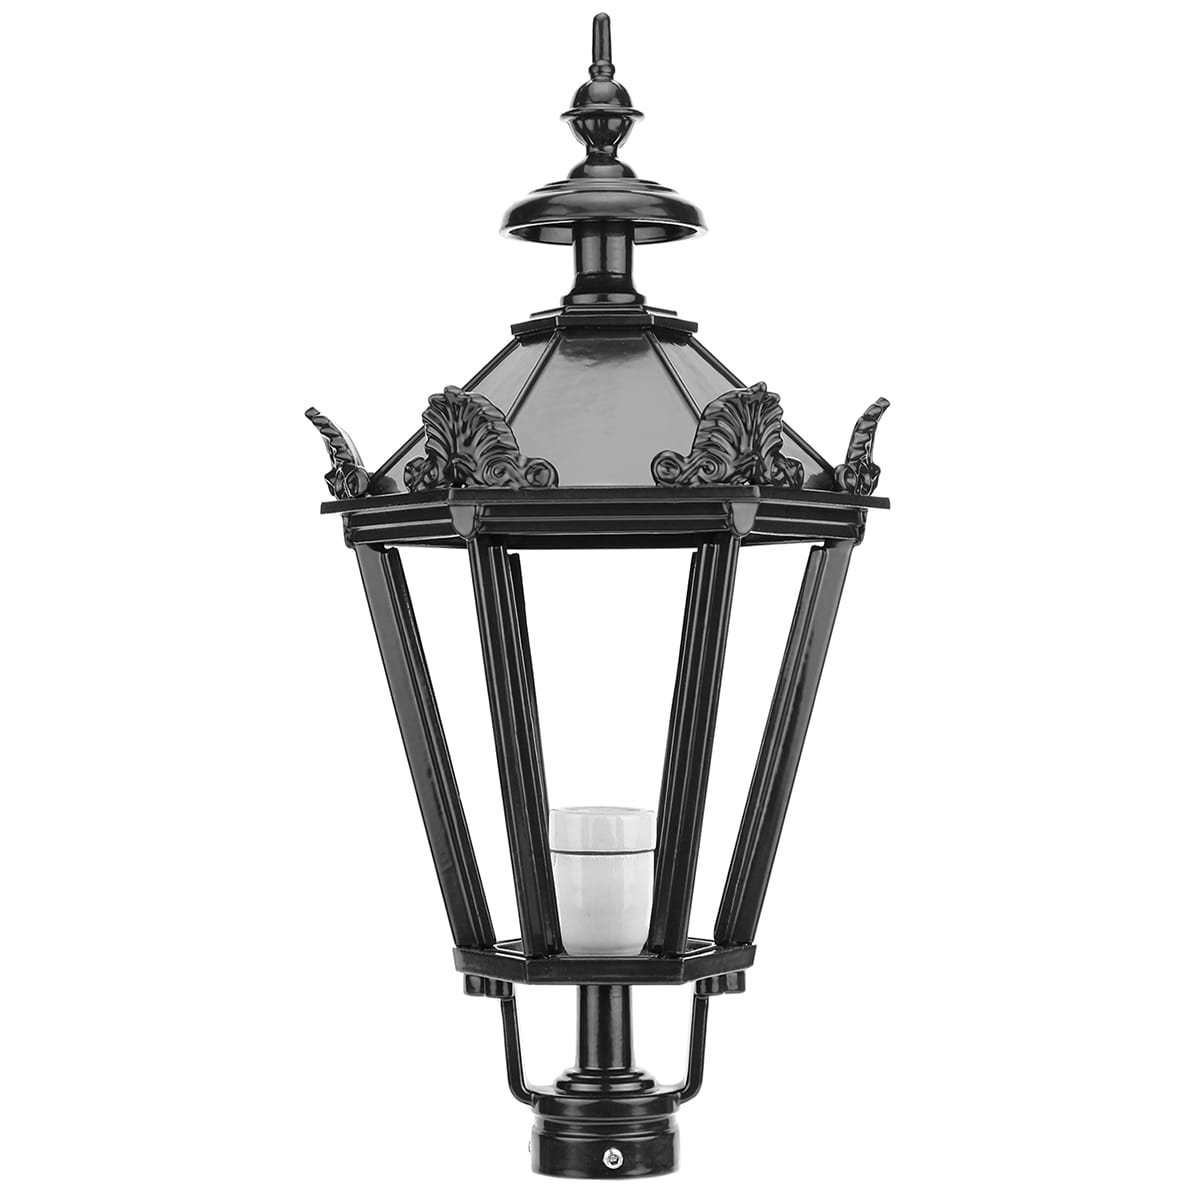 Outdoor lighting Classic Rural Loose lantern shade K10+ with crowns - 90 cm